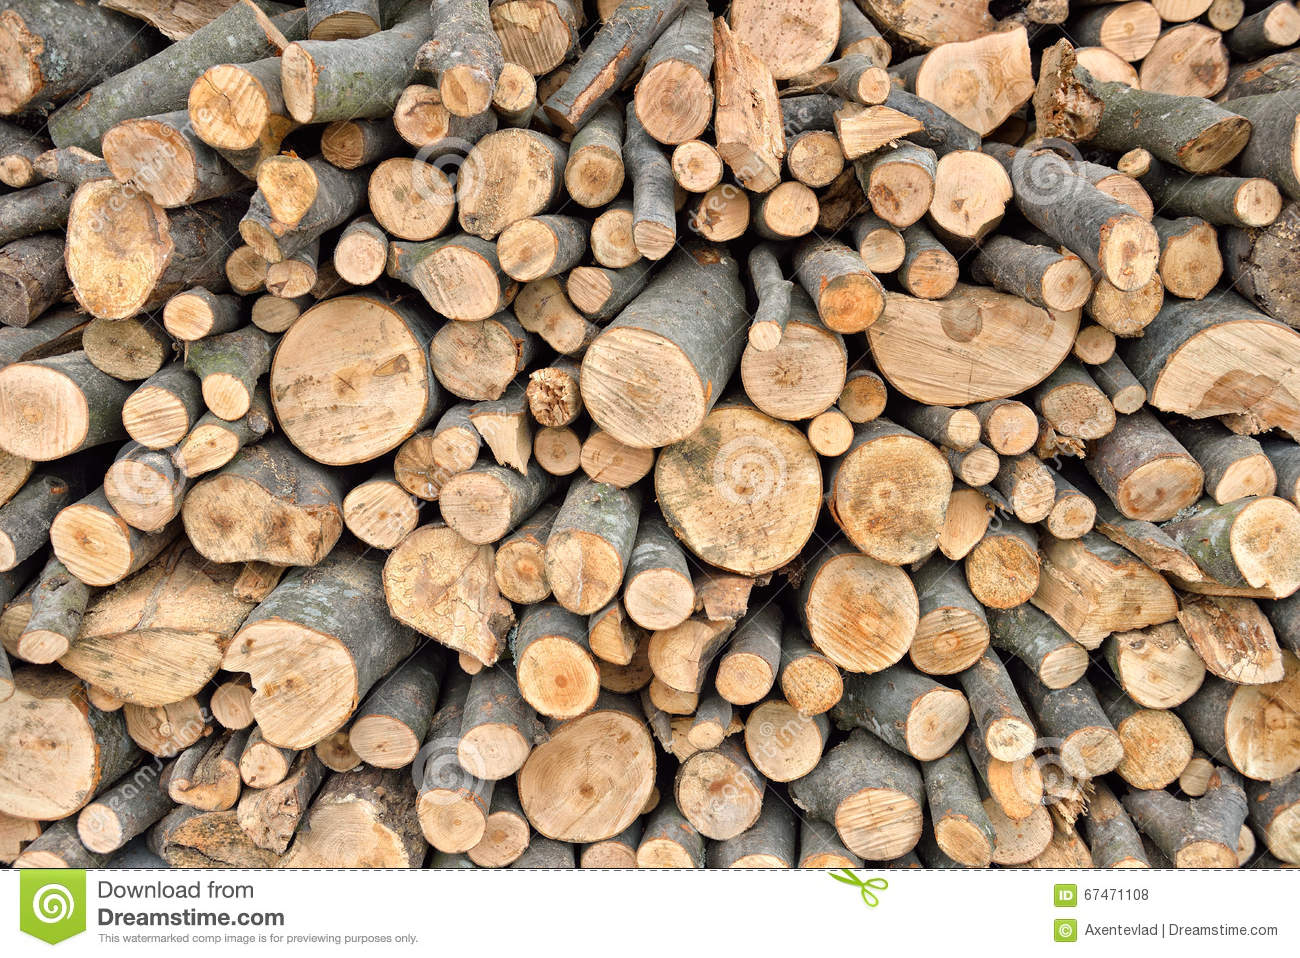 Raw Debarked Wood Logs In A Lumber Staging And Storage Yard. Raw Timber  Stacked